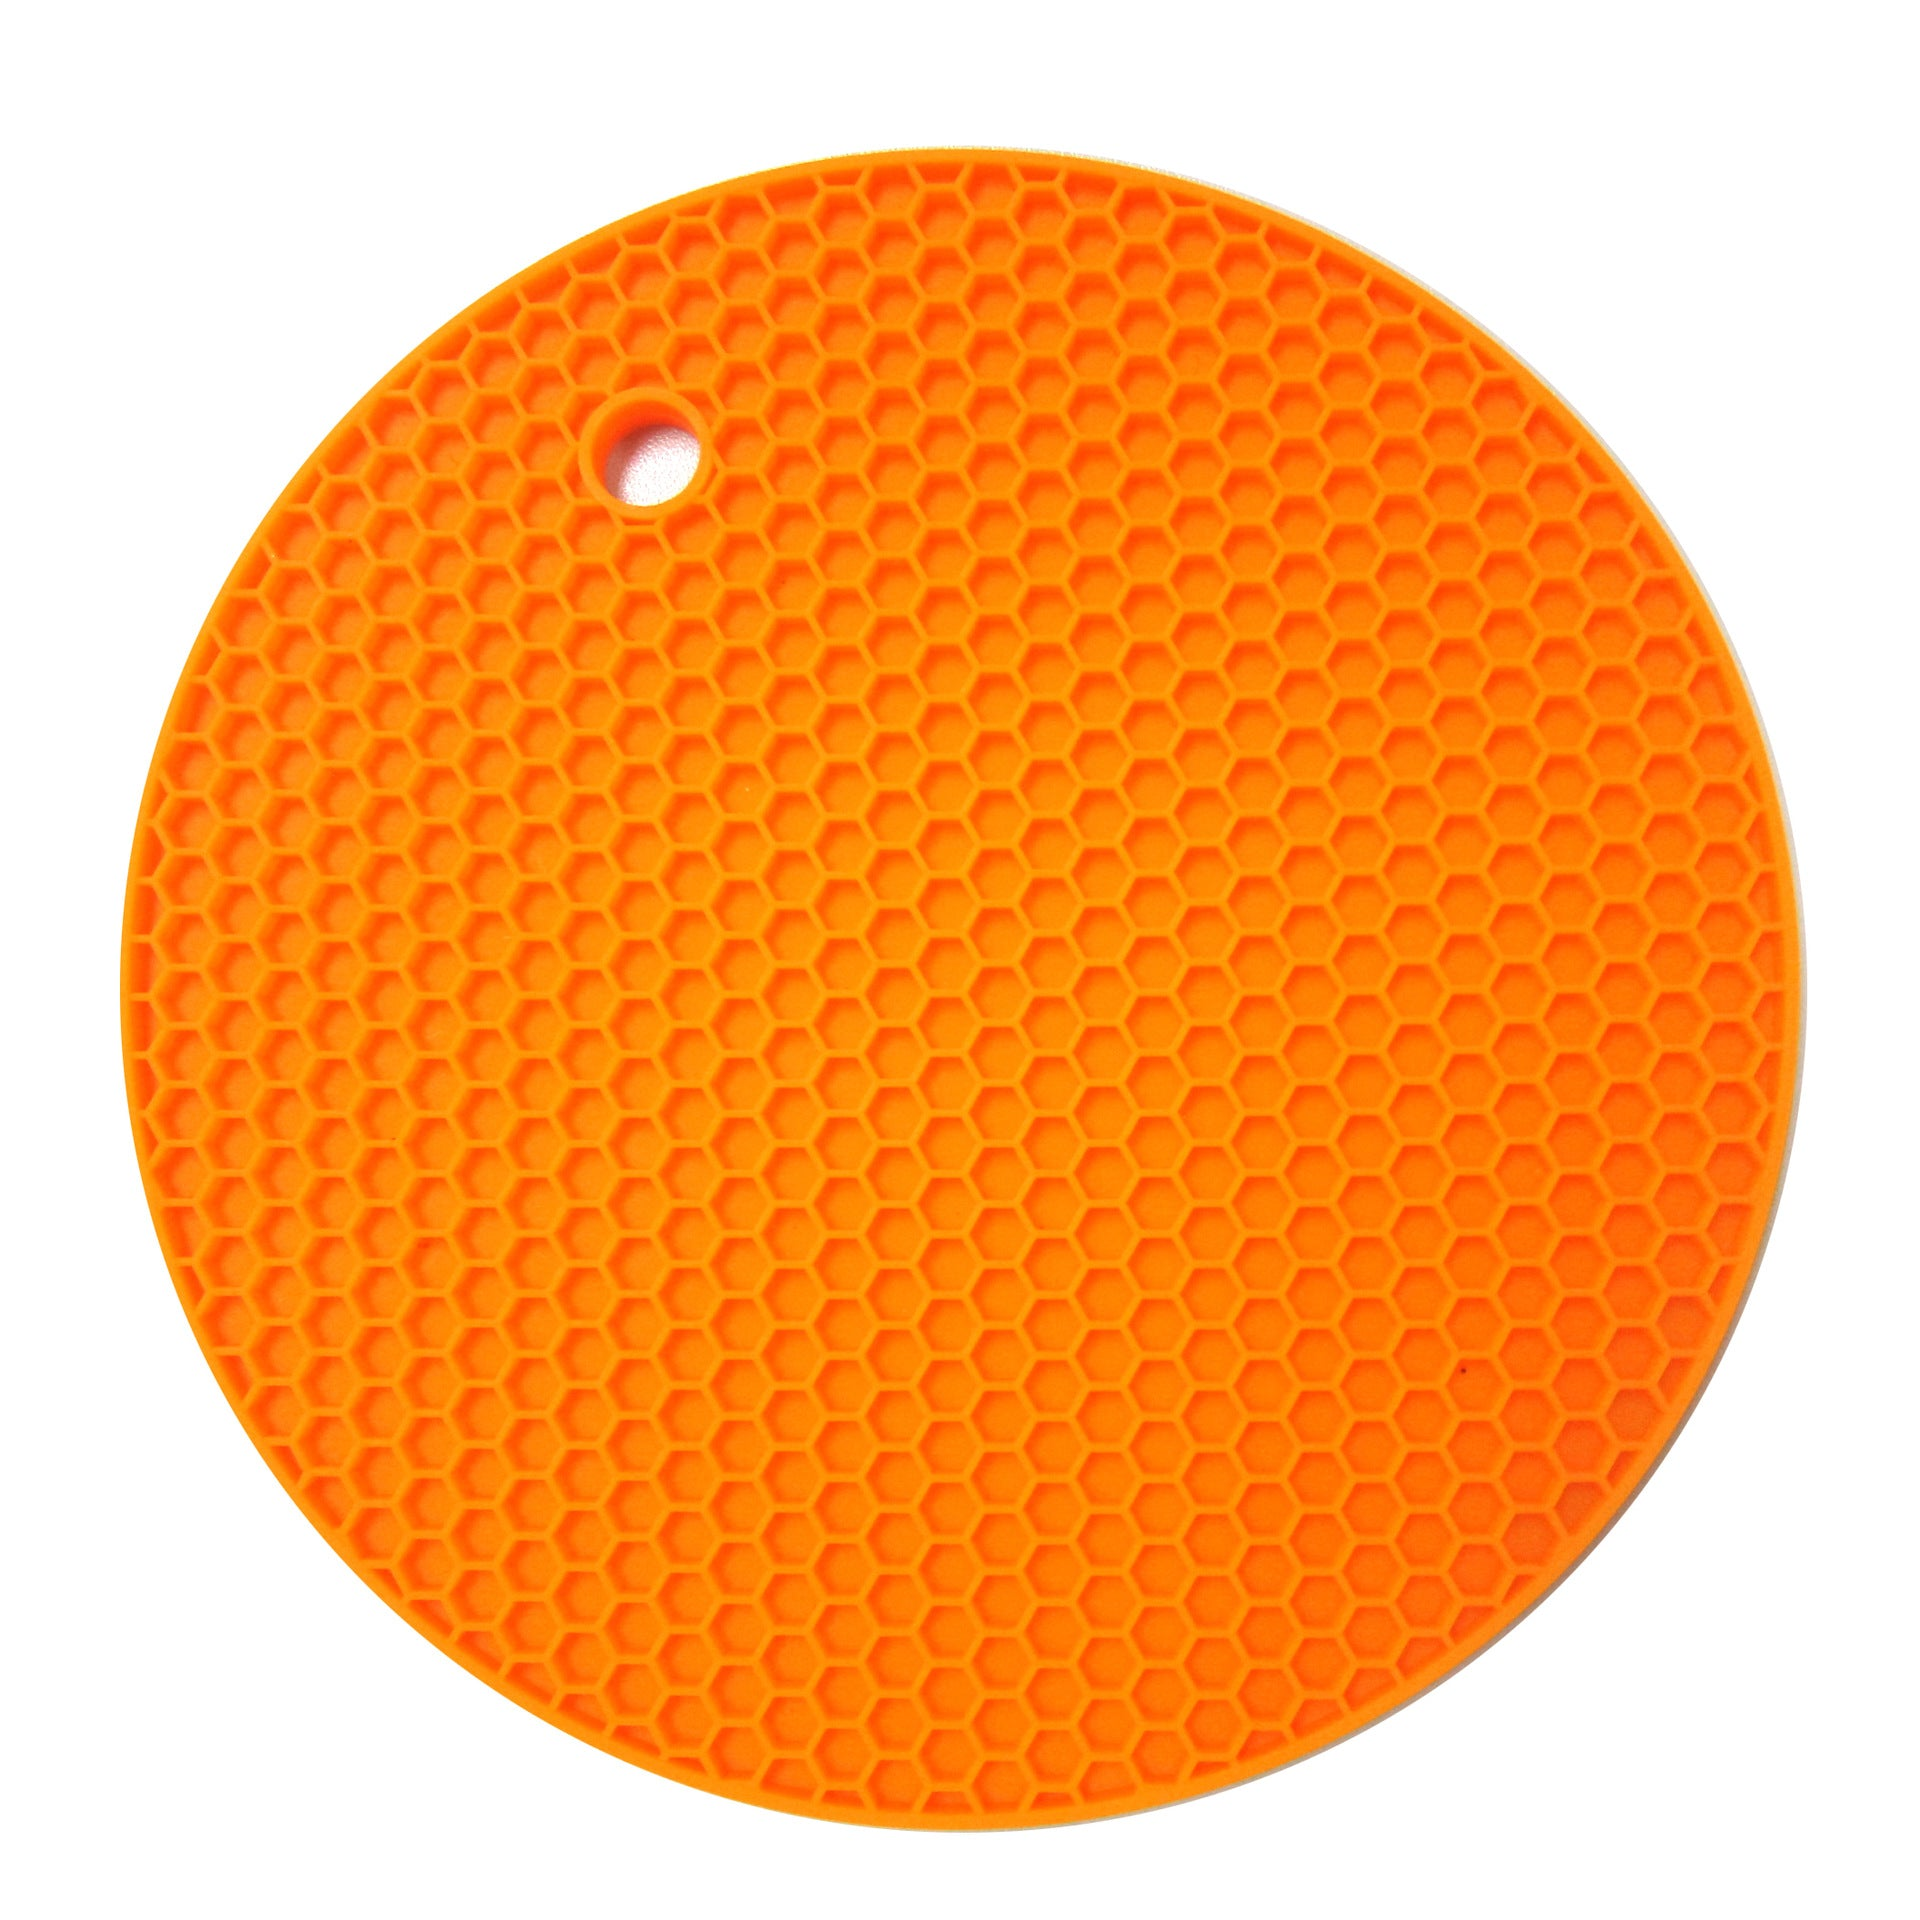 resistant pot stocked non cushion home product collections holder heat placemat round ho silicone pan slip garden pads mat mats hot pets image products coaster